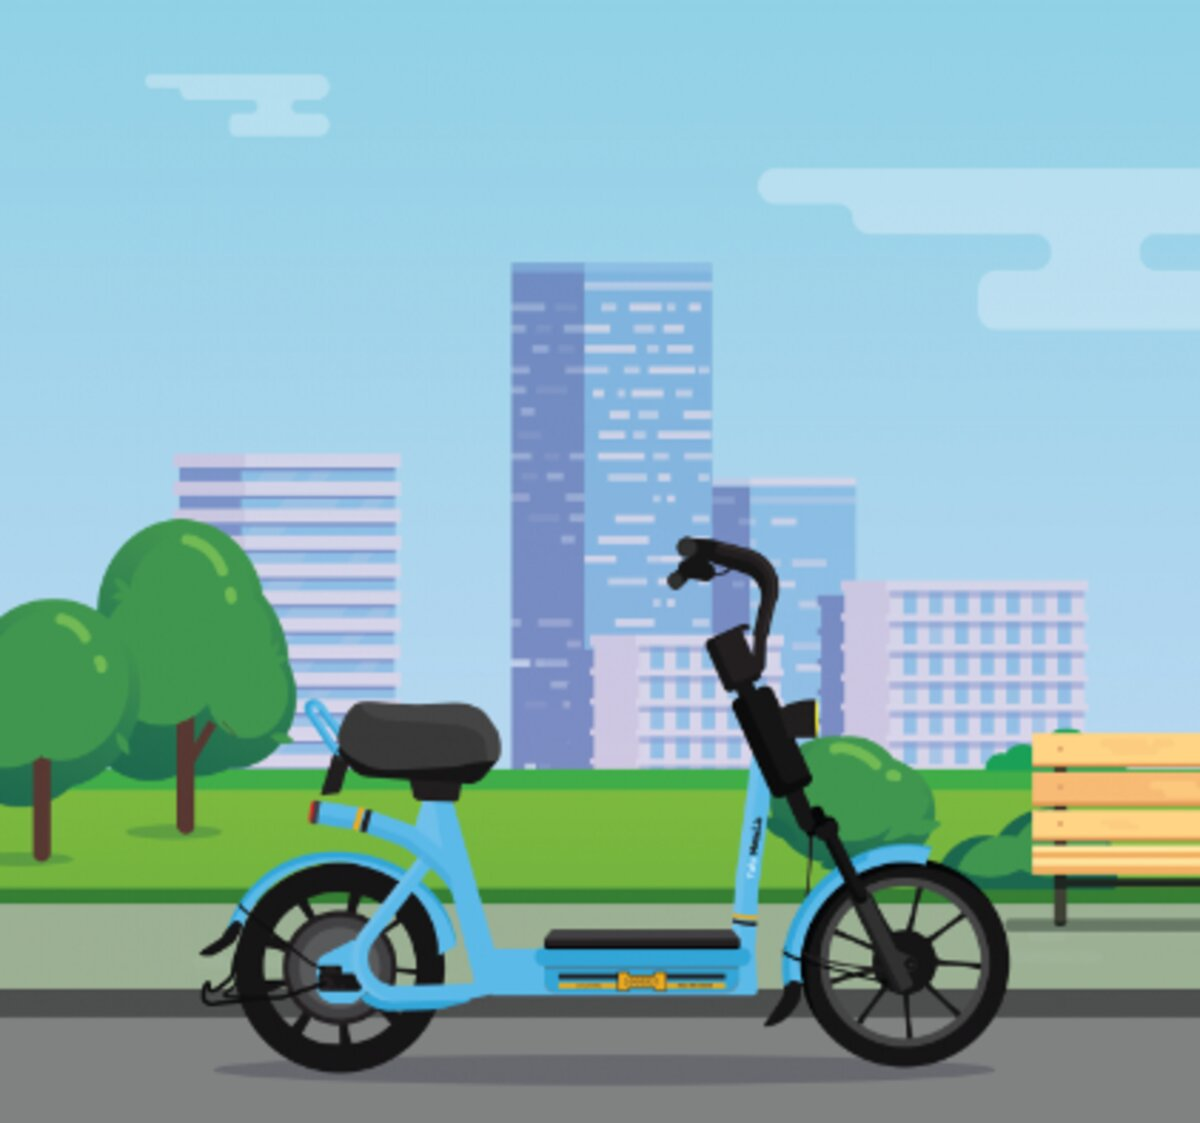 New age start-up 'The Fuel Delivery' starts operations in Mumbai